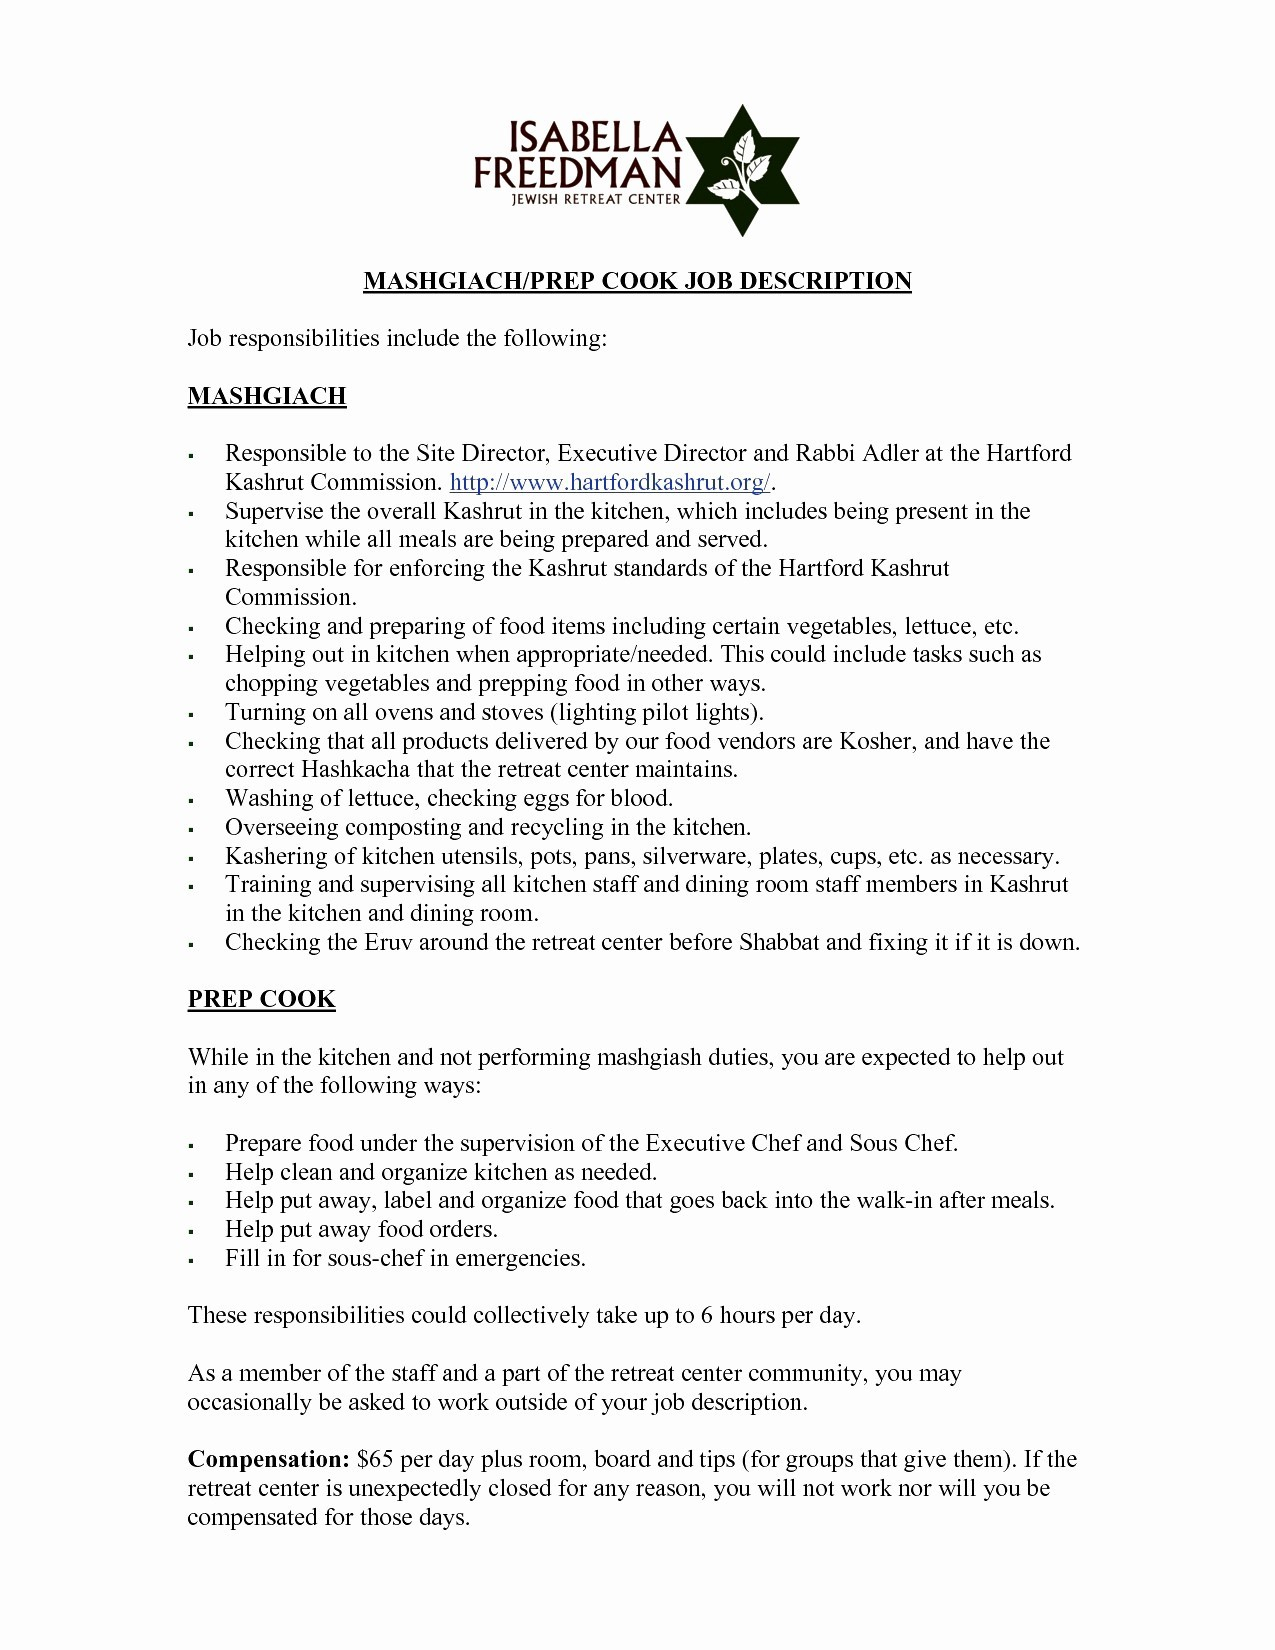 Cover Letter Template Free Google Docs - Free Resume Templates Google Docs New Luxury Cover Letter Template